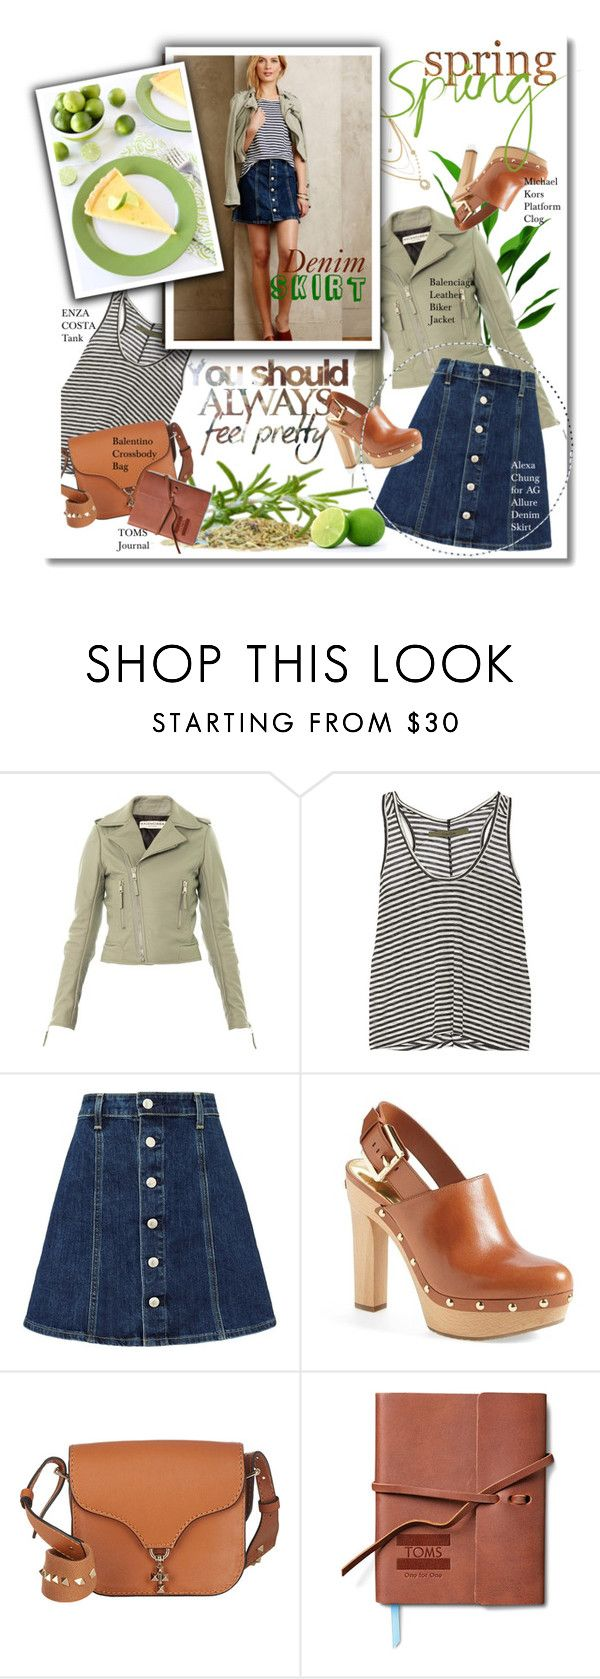 """""""Always Feel Pretty: Spring Denim Skirt"""" by junglover ❤ liked on Polyvore featuring Balenciaga, Enza Costa, AG Adriano Goldschmied, MICHAEL Michael Kors, Valentino, TOMS, Lulu Frost, denimskirt, polyvoreeditorial and polyvorecontest"""